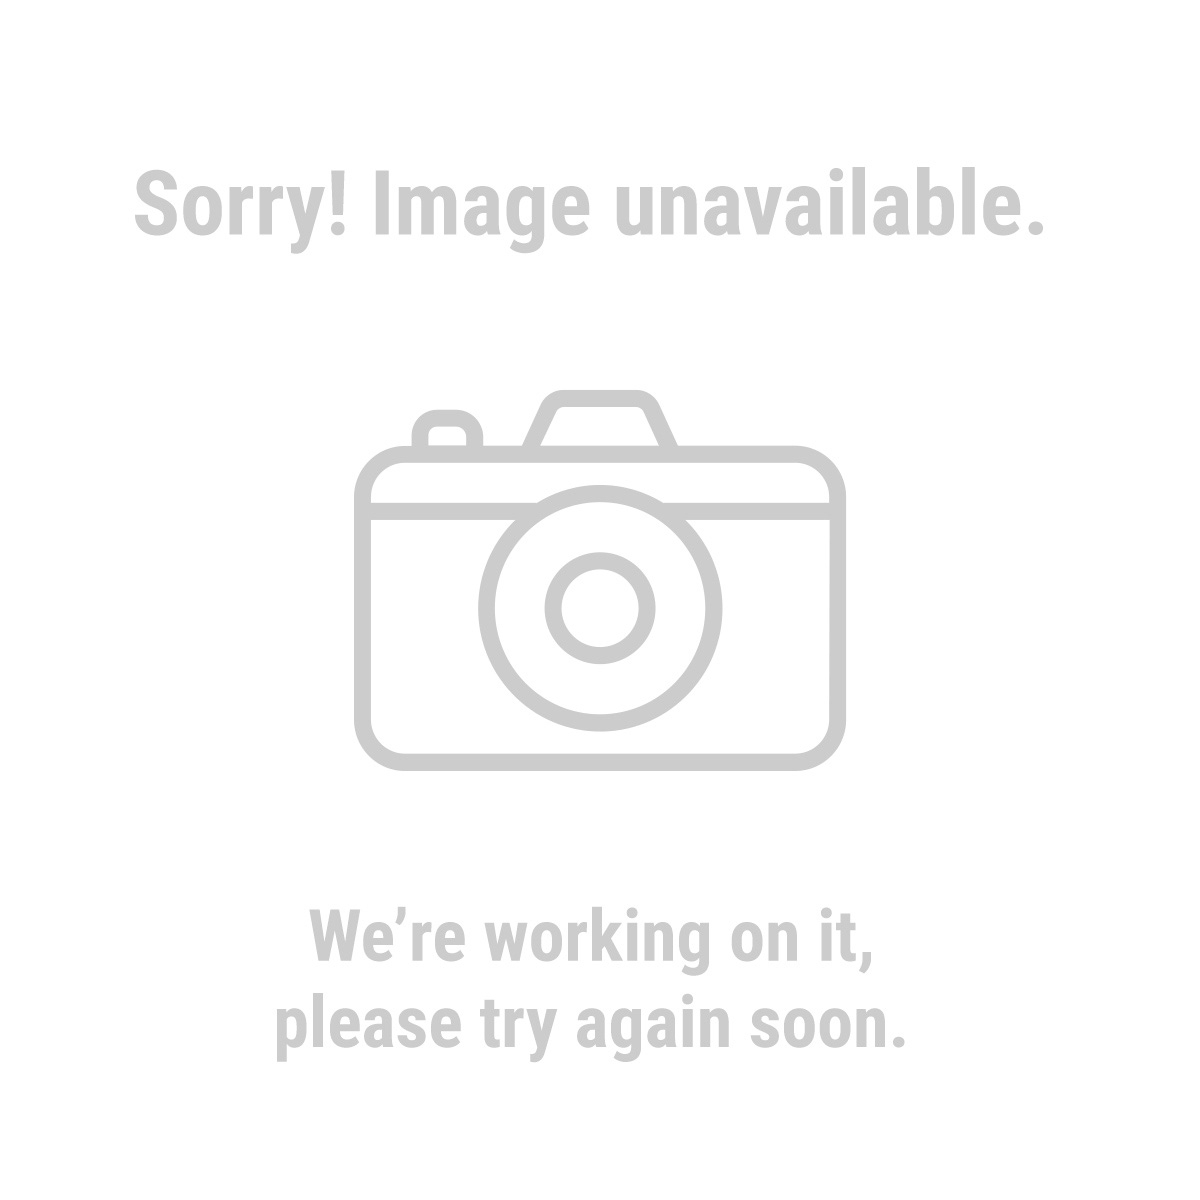 Pittsburgh® 67011 3 Piece Square Drive Socket Caps